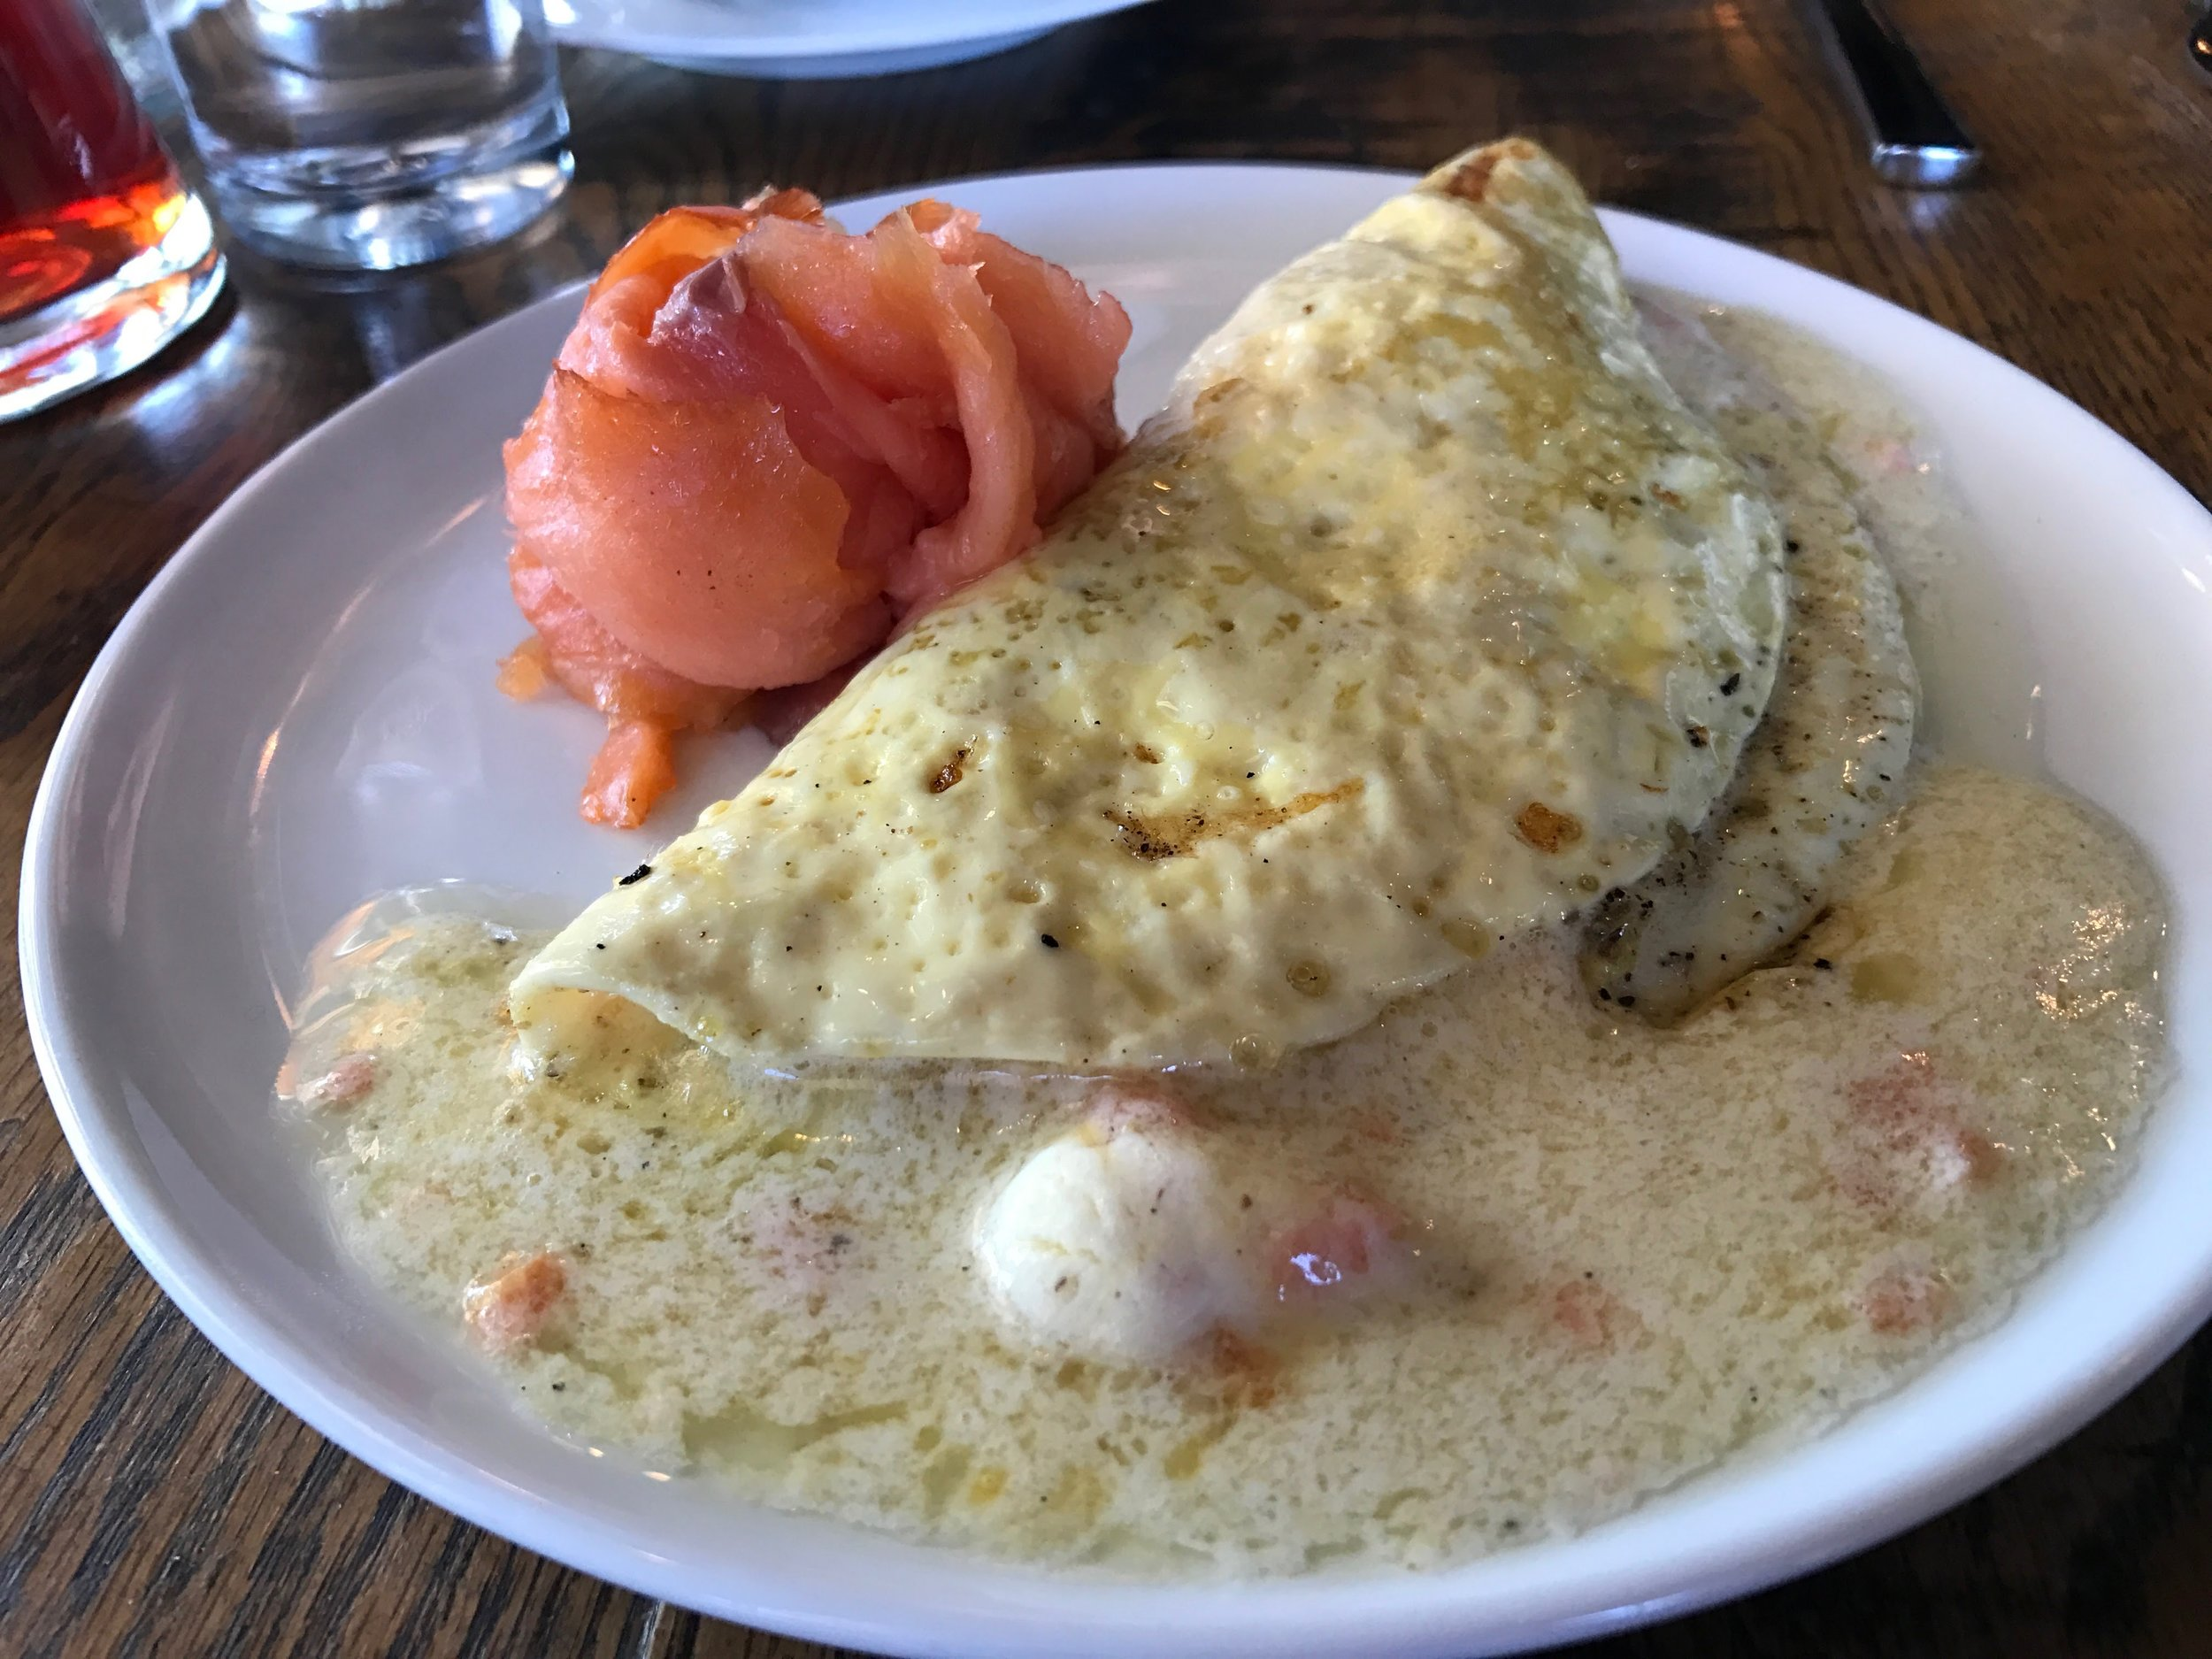 Omelette - With loxOmelettes are not ever a favorite of ours at littleSpoon. They typically lack salt and pepper, though they are cooked beautifully—light and fluffy. What a shame, because typically cooking an omelette properly is the hardest part, and they've got that down.